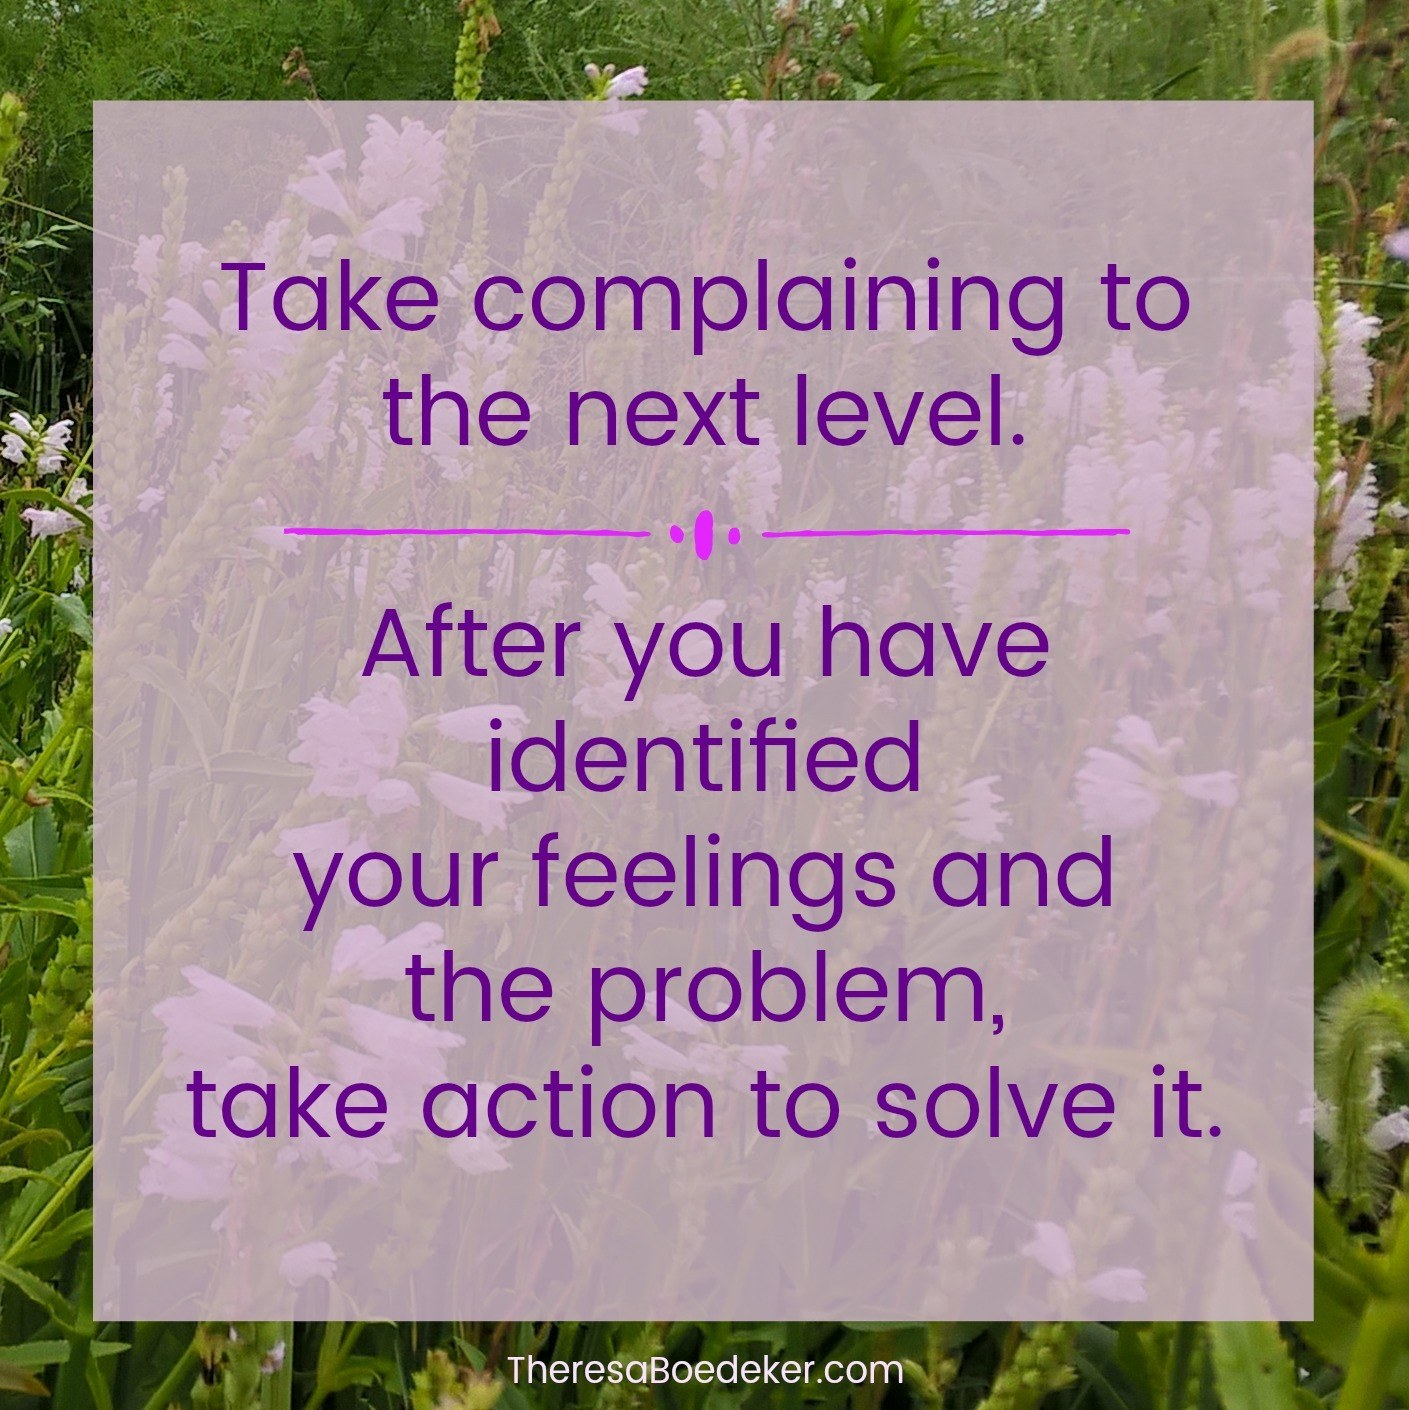 Learn the 4 benefits of complaining. Then take complaining to the next level and do something about your complaints.